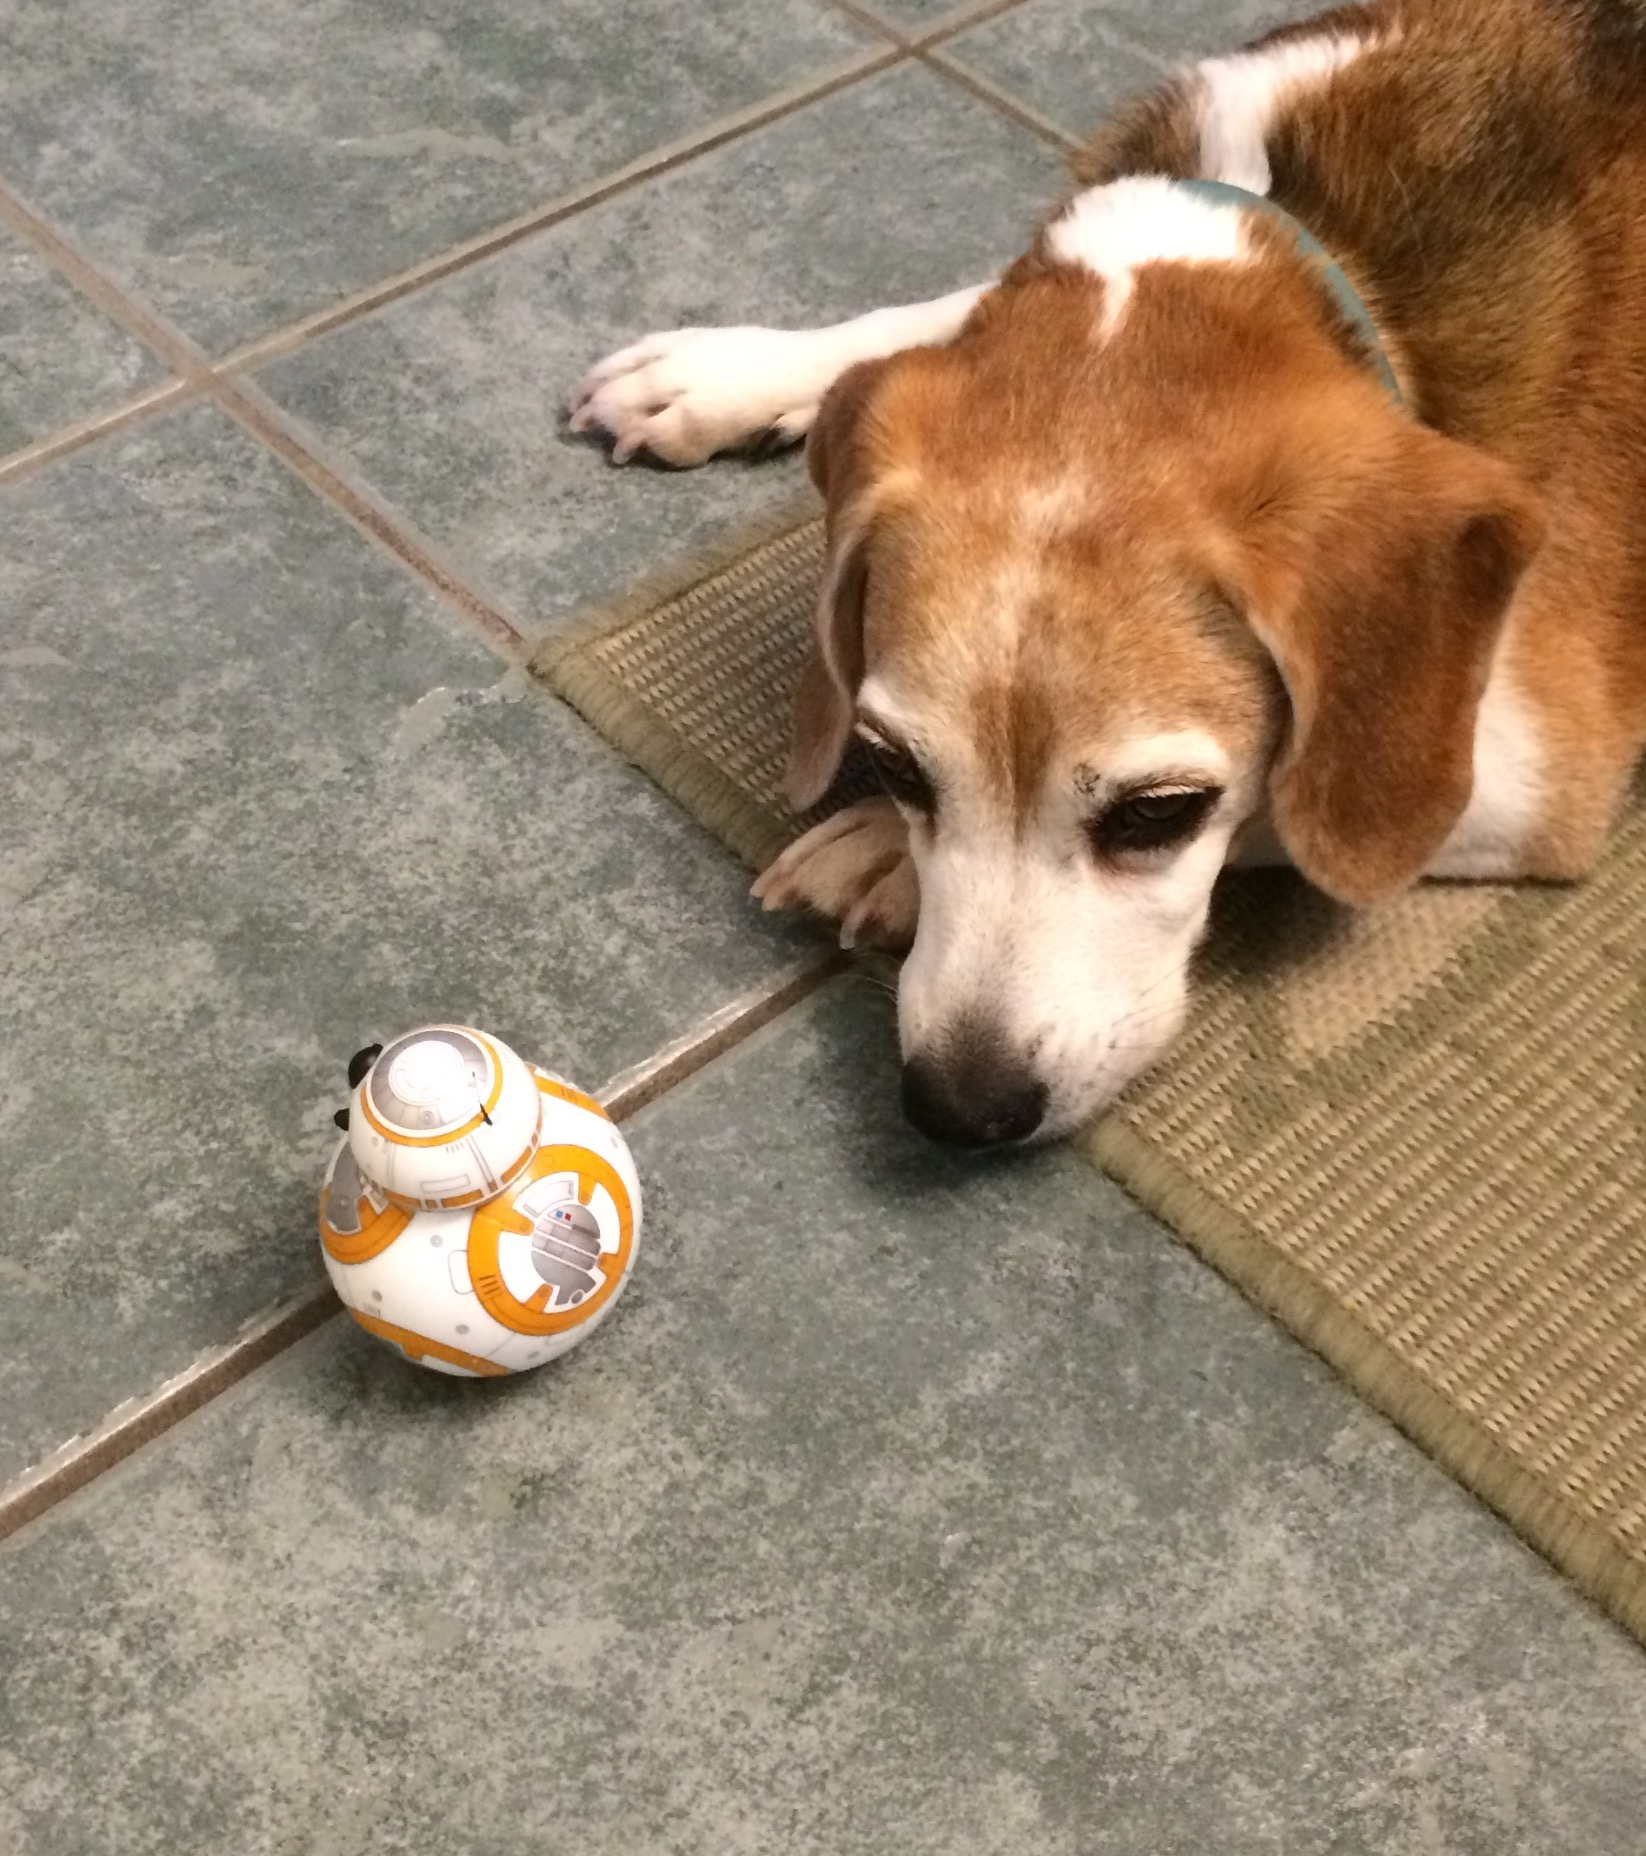 My beagle thinks I'm stupid for not rolling in dead things. Or not letting her eat random mushrooms that grow in the yard. Or playing with robots when I could be throwing the tennis ball for her.